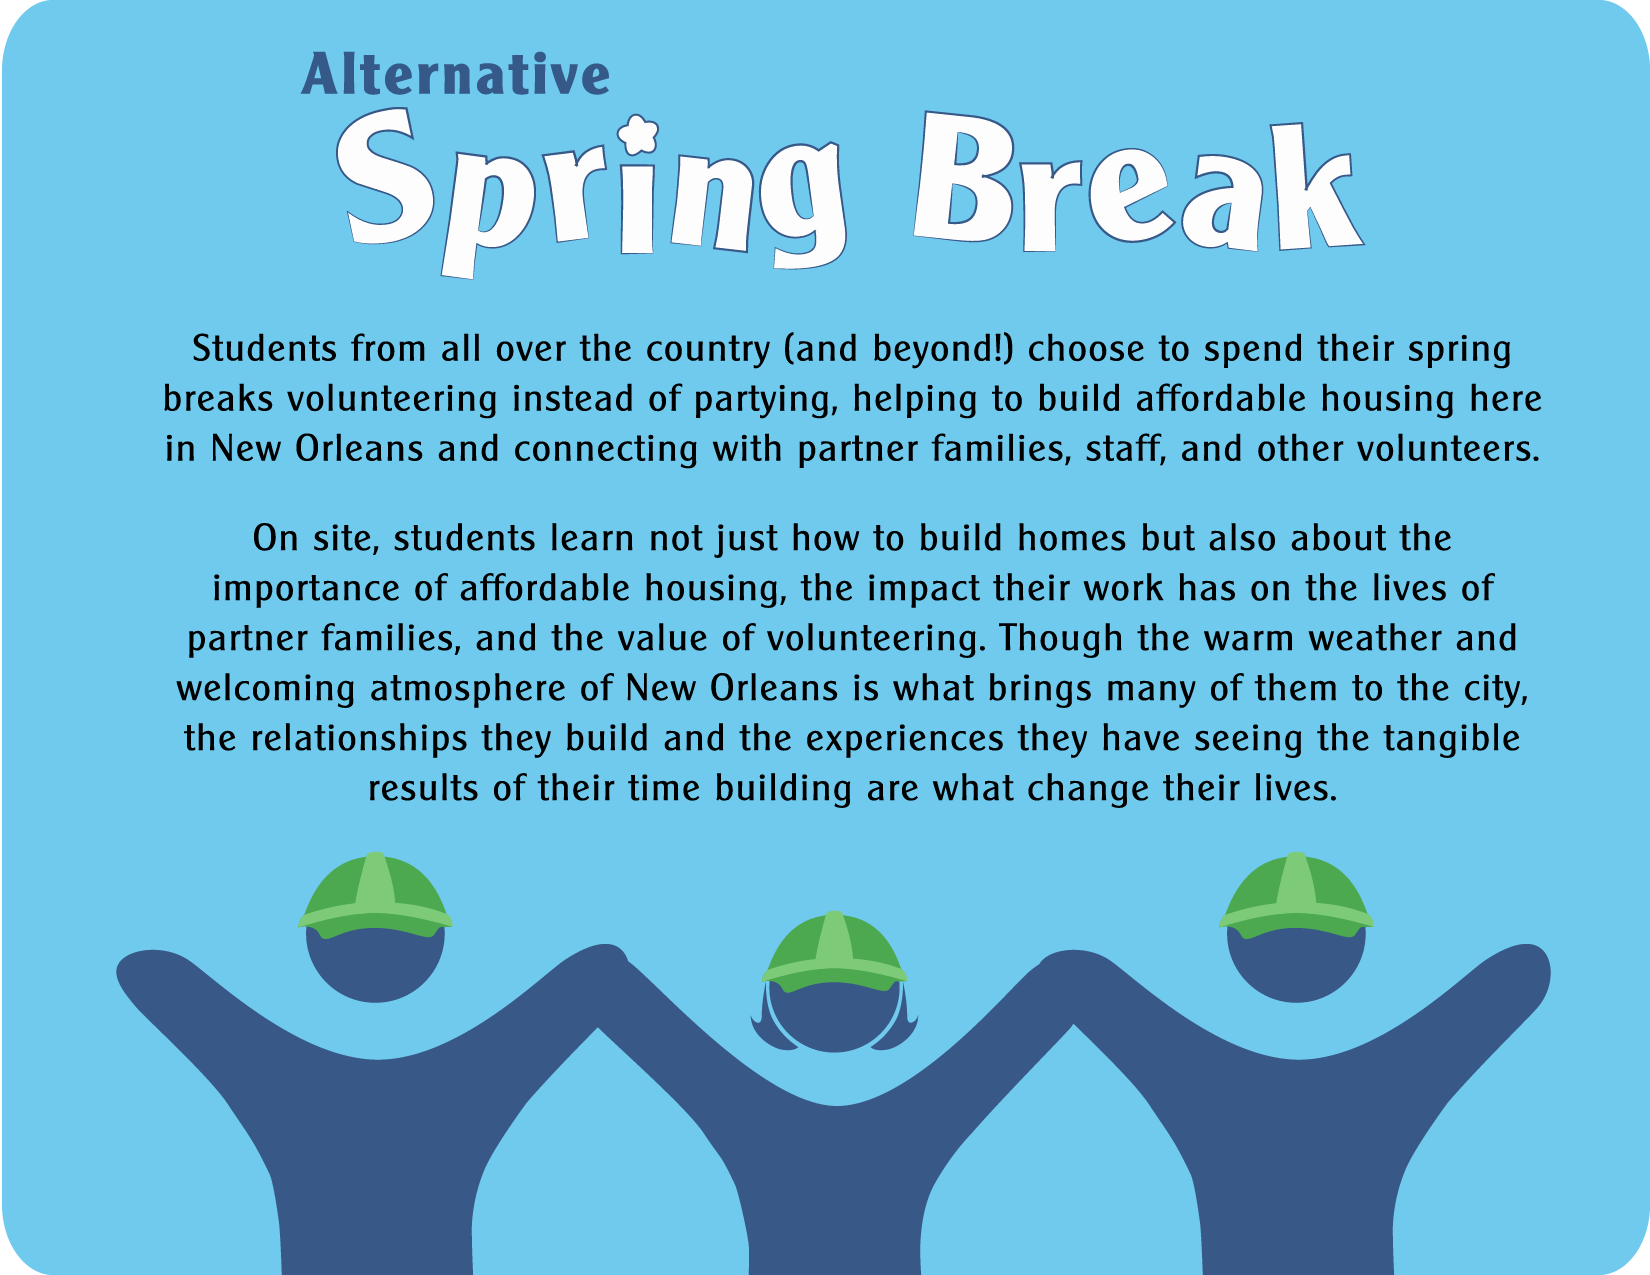 spring break explanation graphic-01